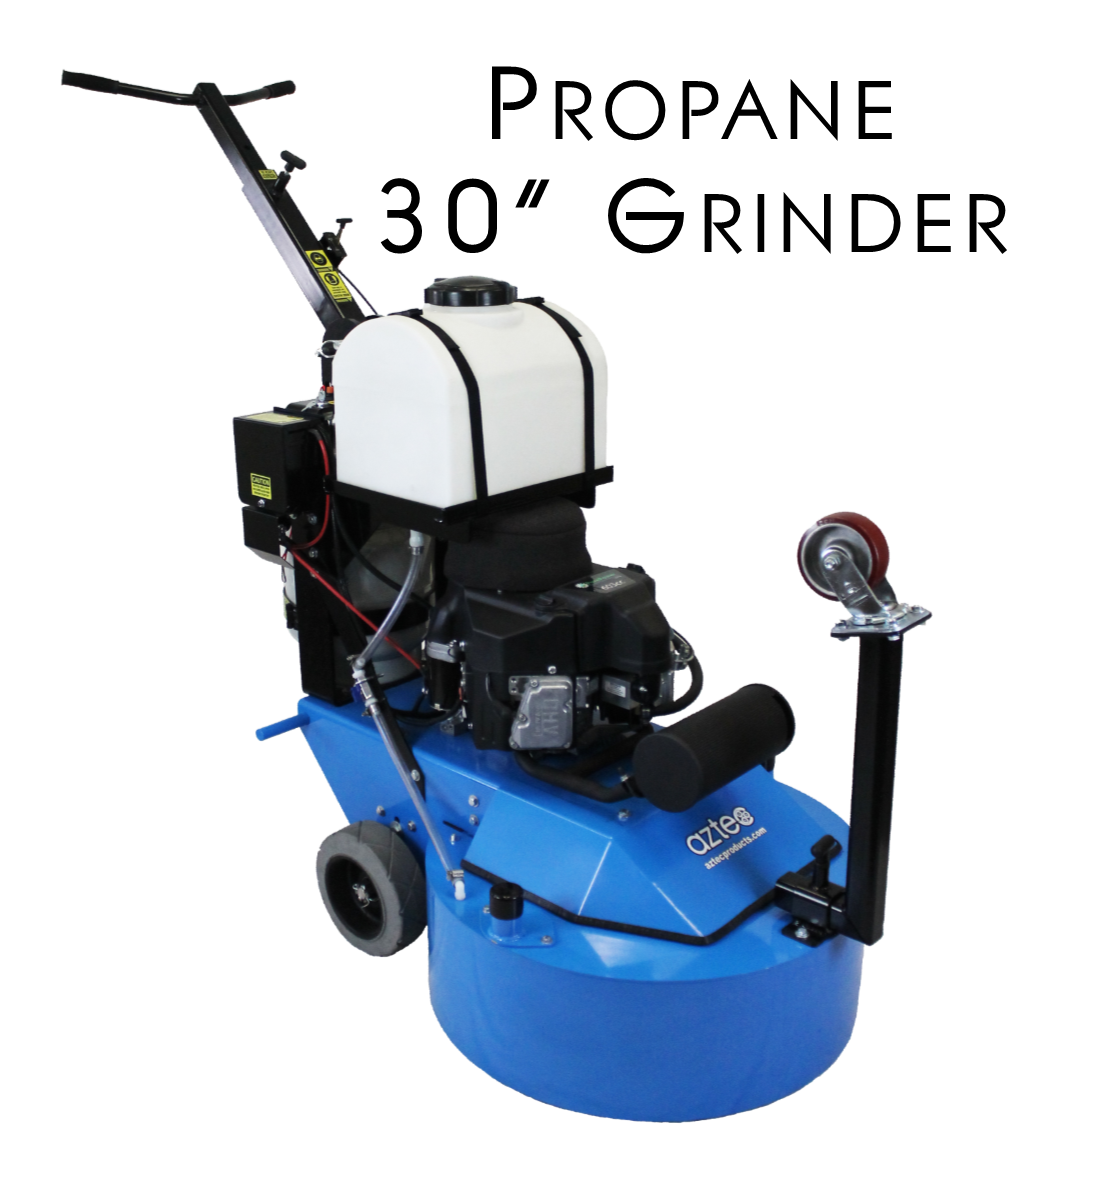 Ultragrind Propane Grinder For Concrete And Terrazzo Floors